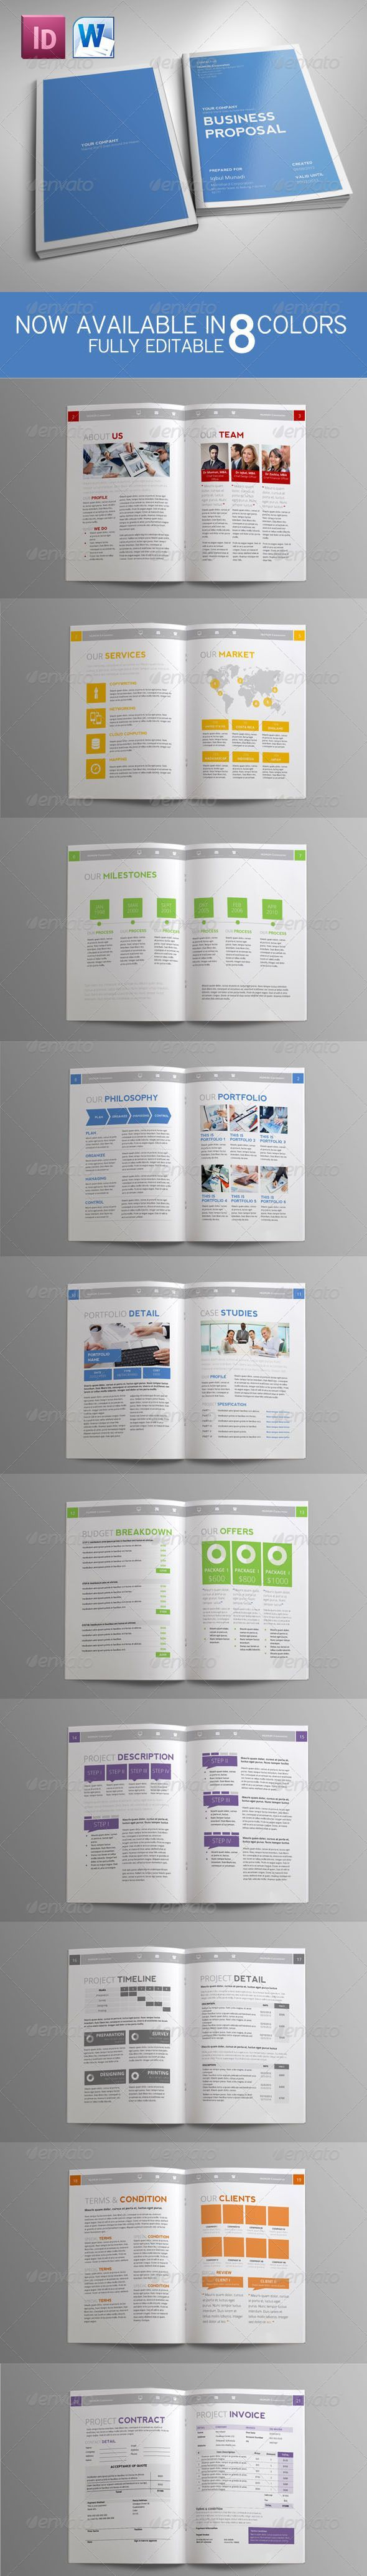 Commercial Proposal Format Cool 20 Best Business Propocal Images On Pinterest  Editorial Design .